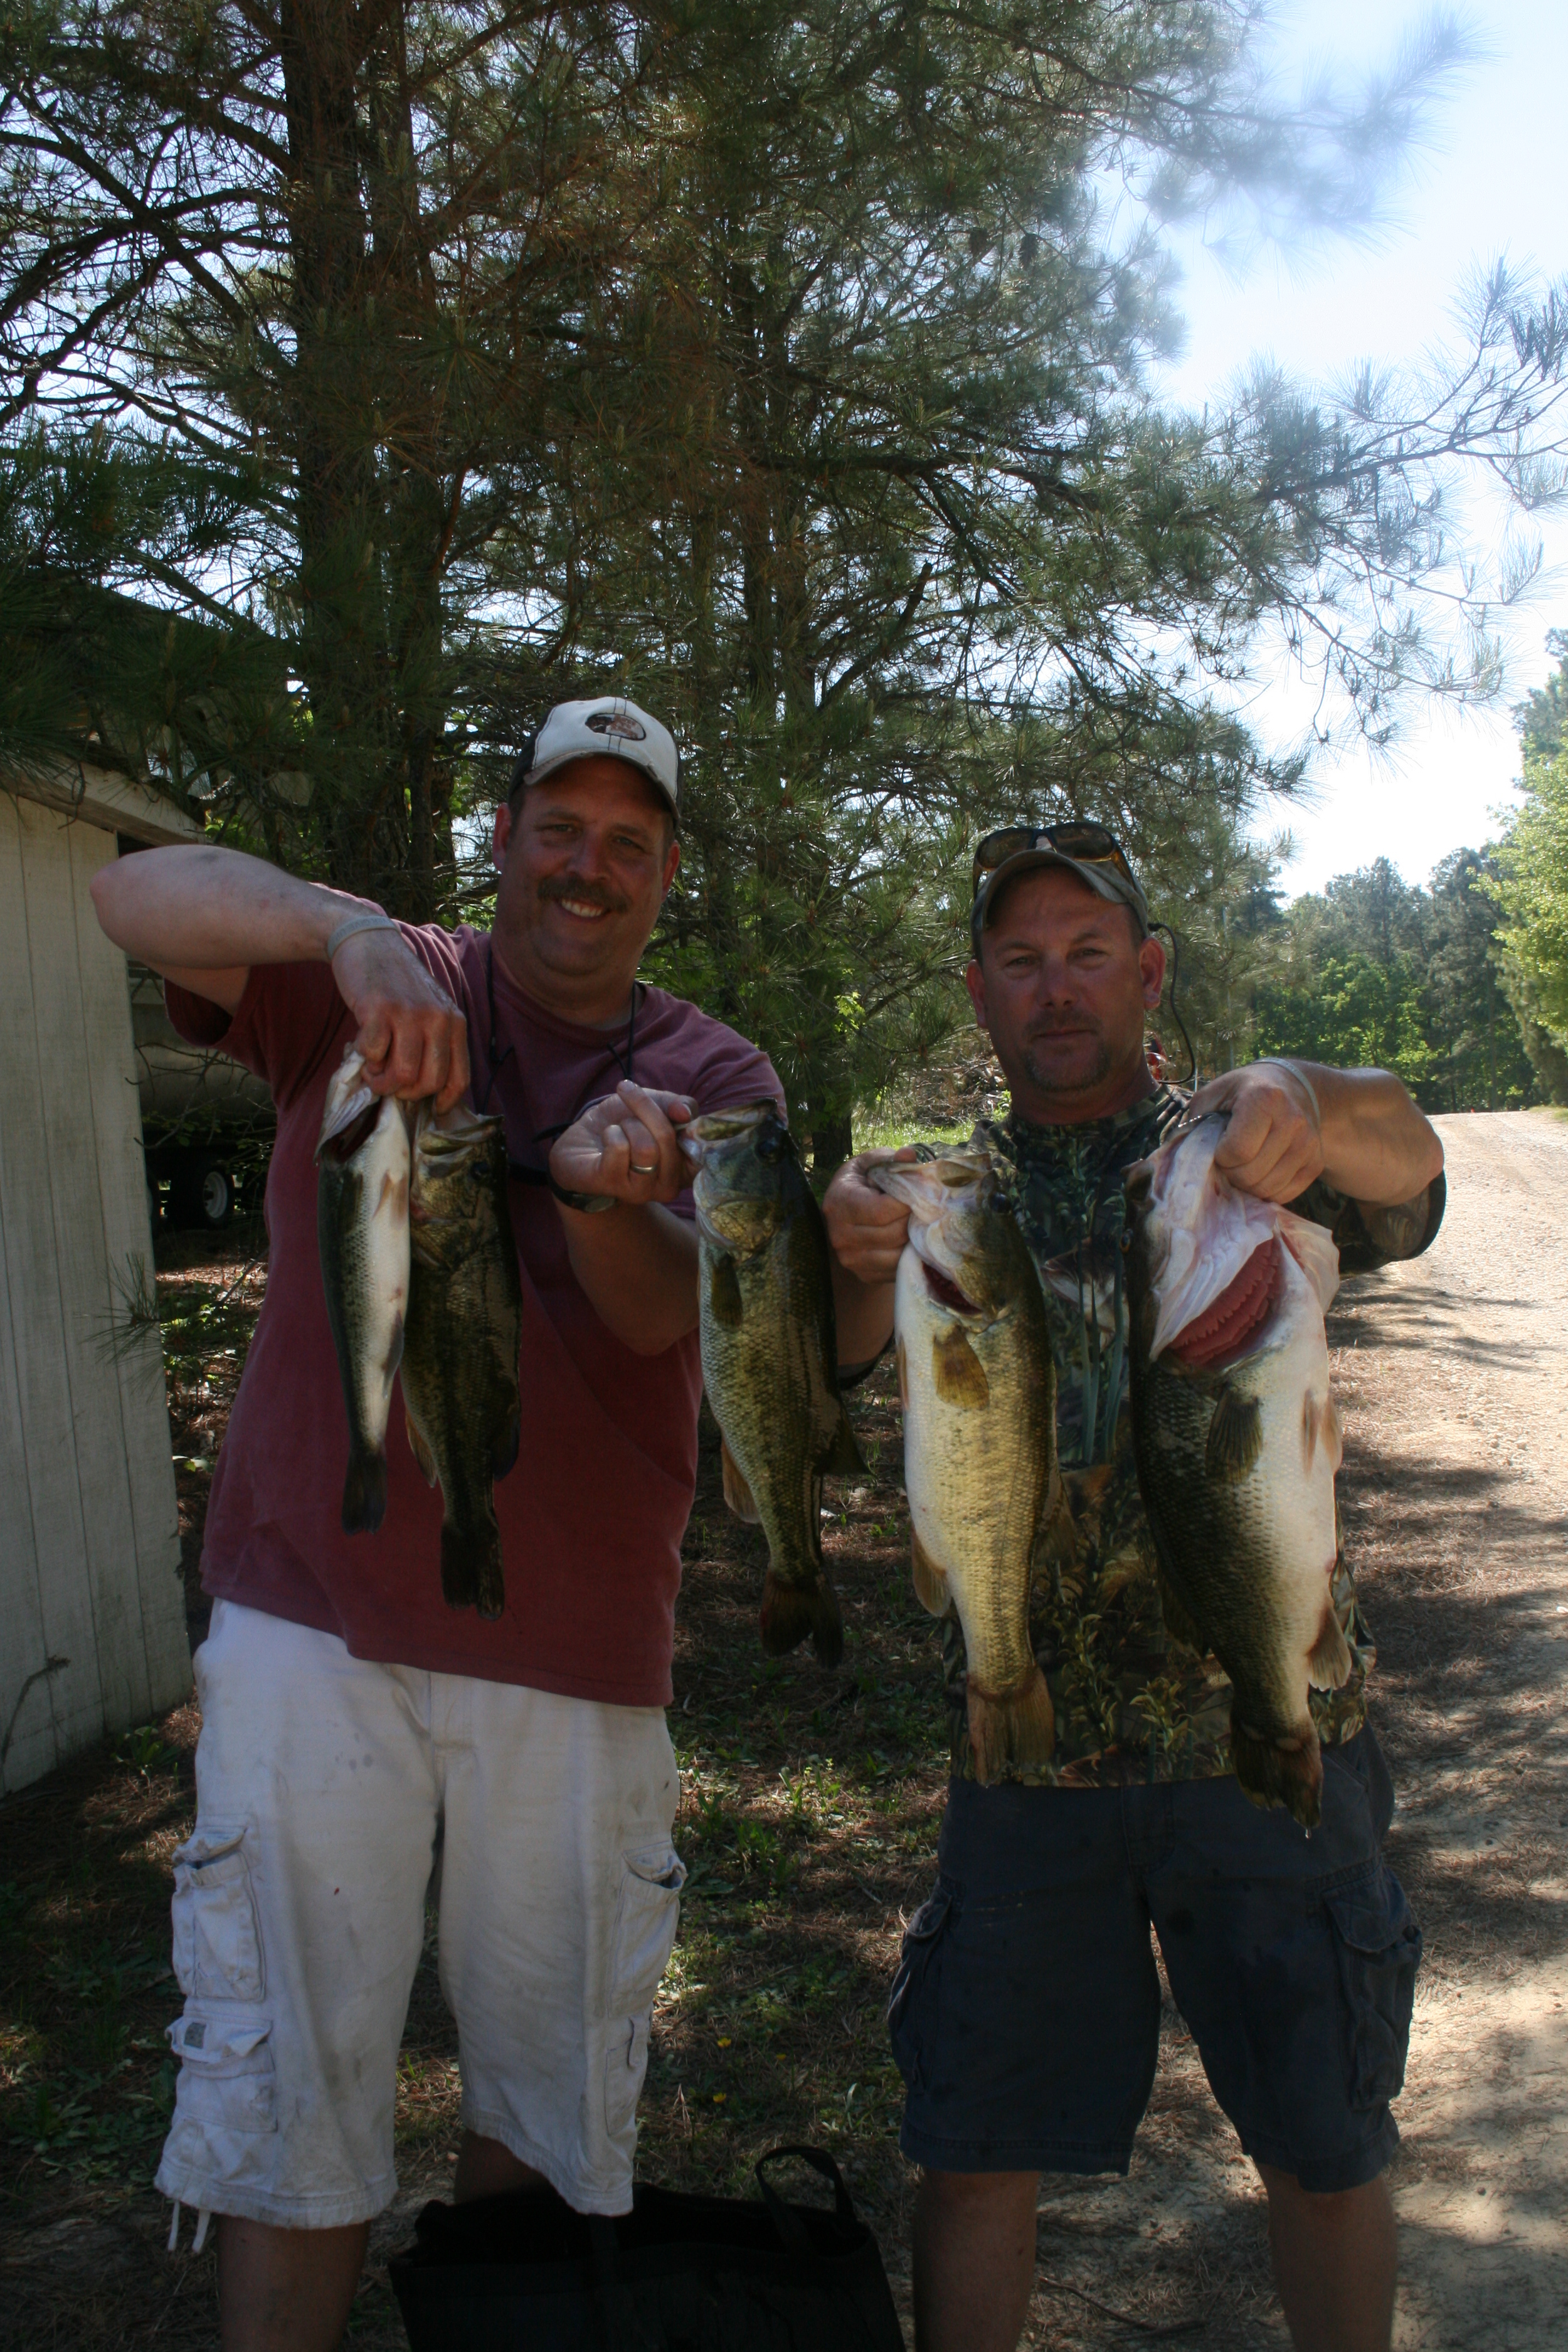 Barry Shrum and Andy Bowman Second Place 18.94 lbs